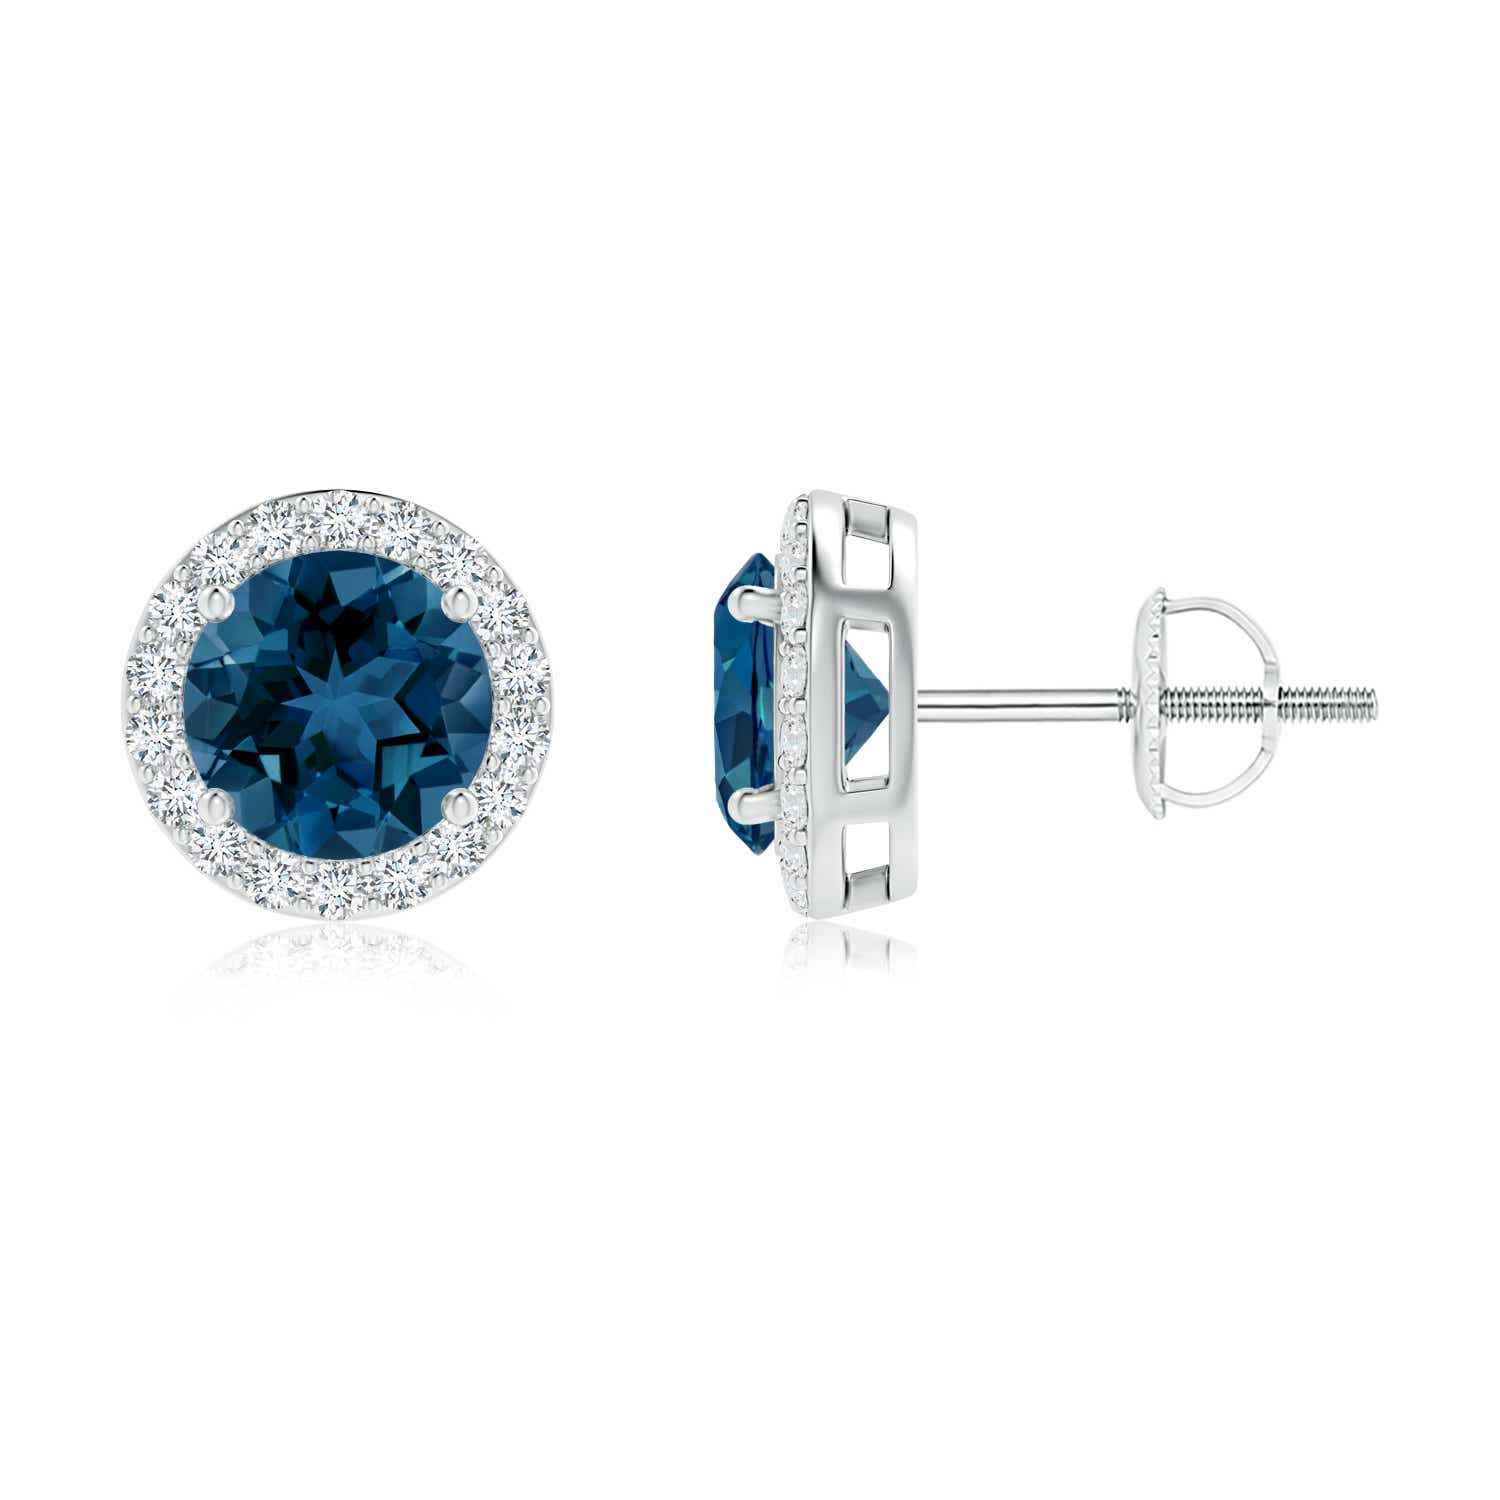 Angara Claw-Set London Blue Topaz Clover Stud Earrings qfCr7N2